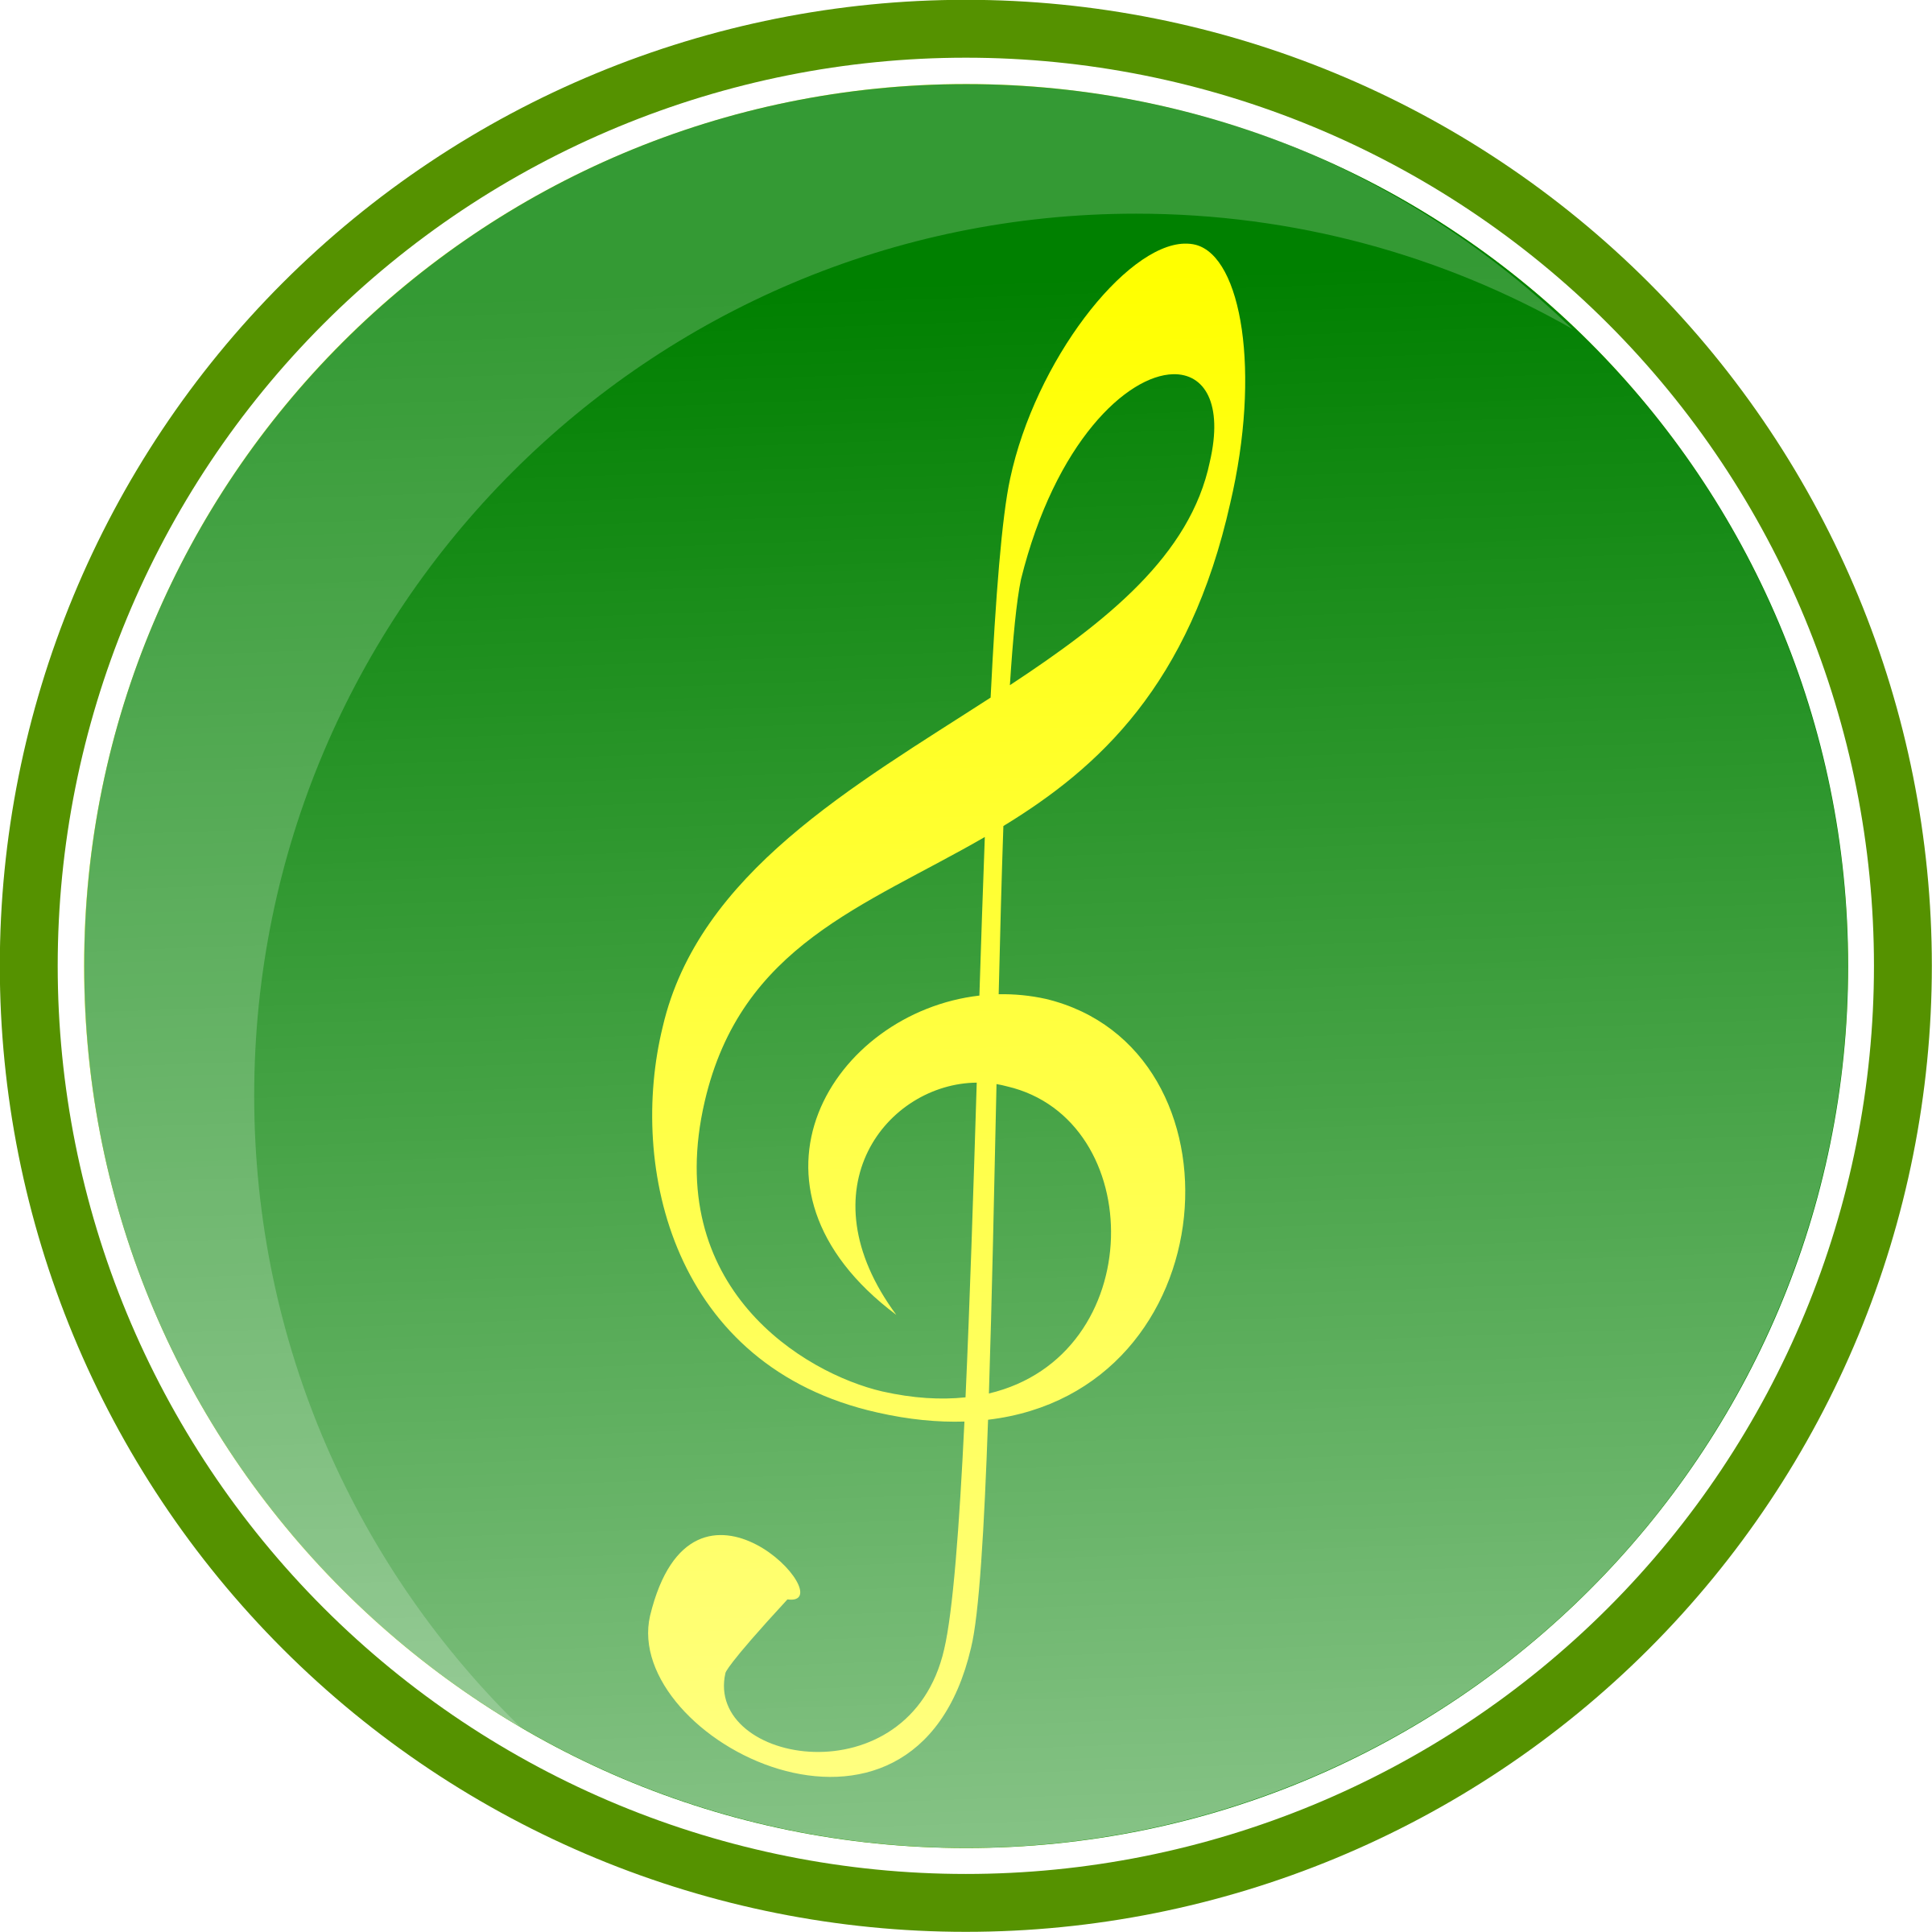 Music Icon-Green-2 by gsagri04